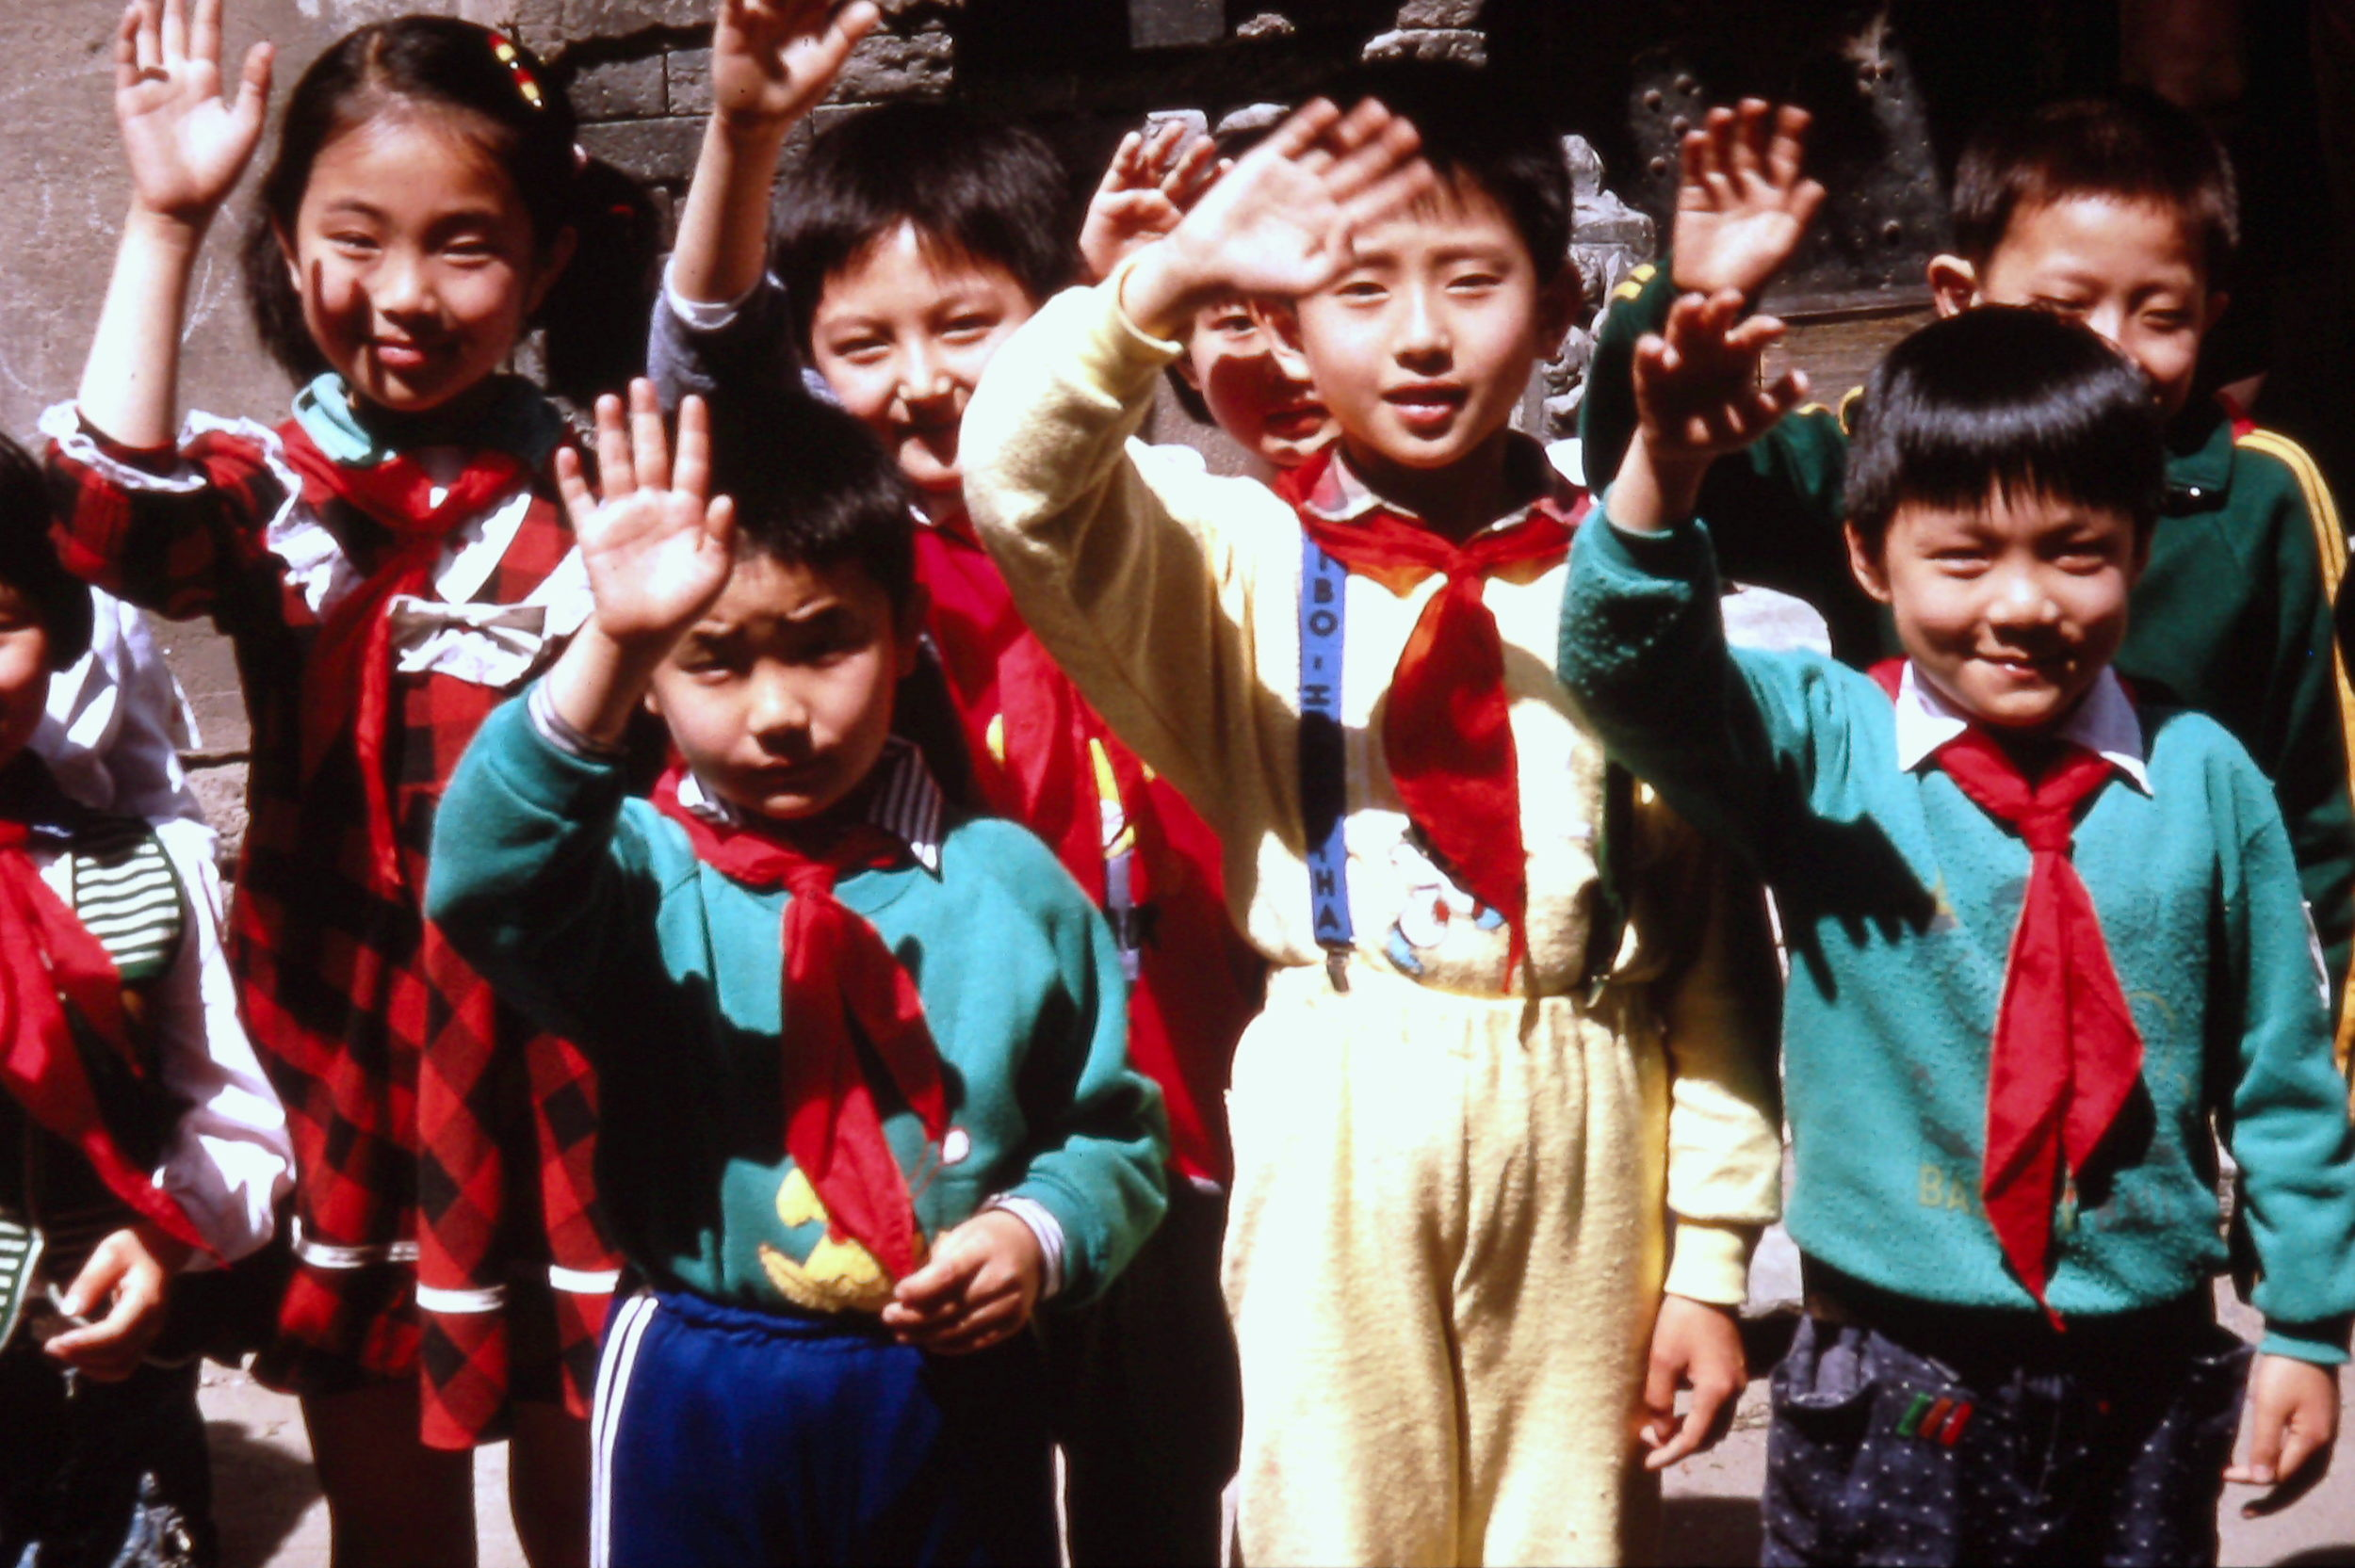 Children on the street wave to the Trans-Antarctica bus as it travels through Beijing, China,May 1990. Photo: Cathy de Moll